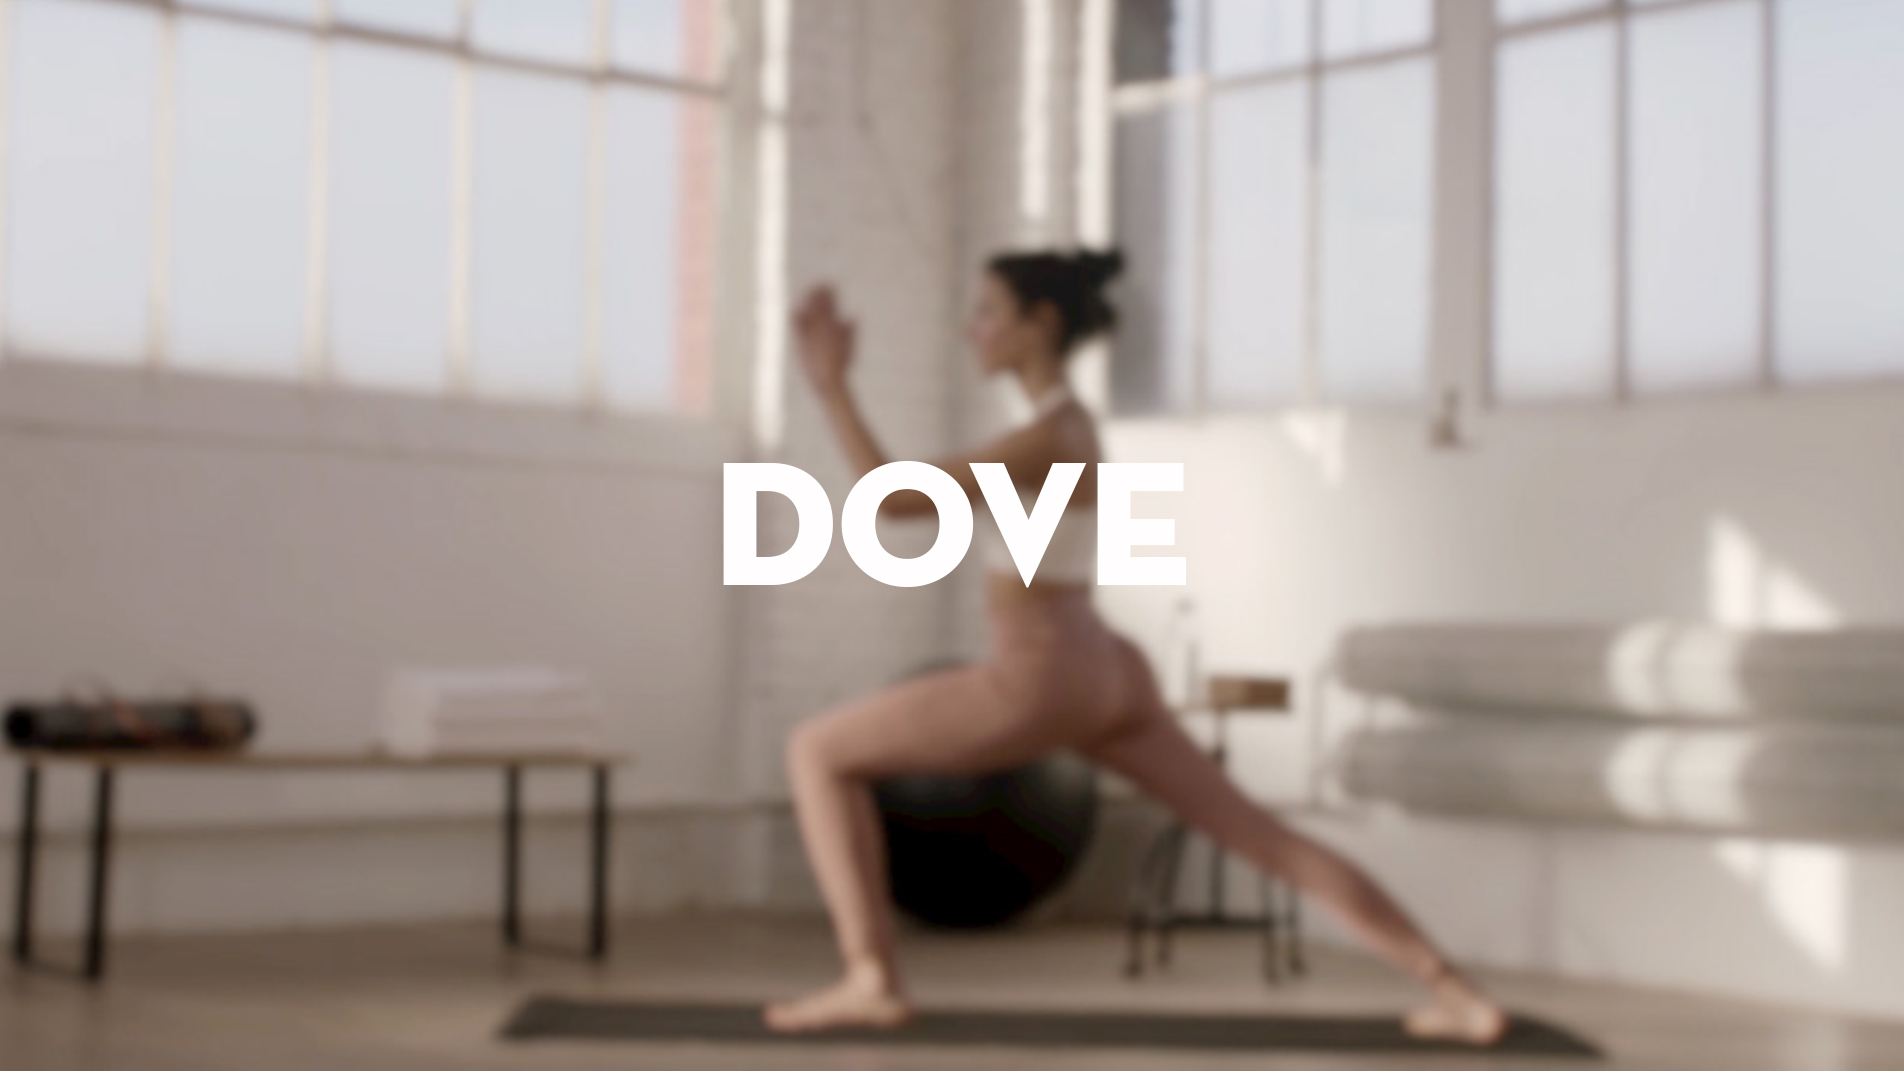 DOVE // DRY CONDITIONER HOW-TO